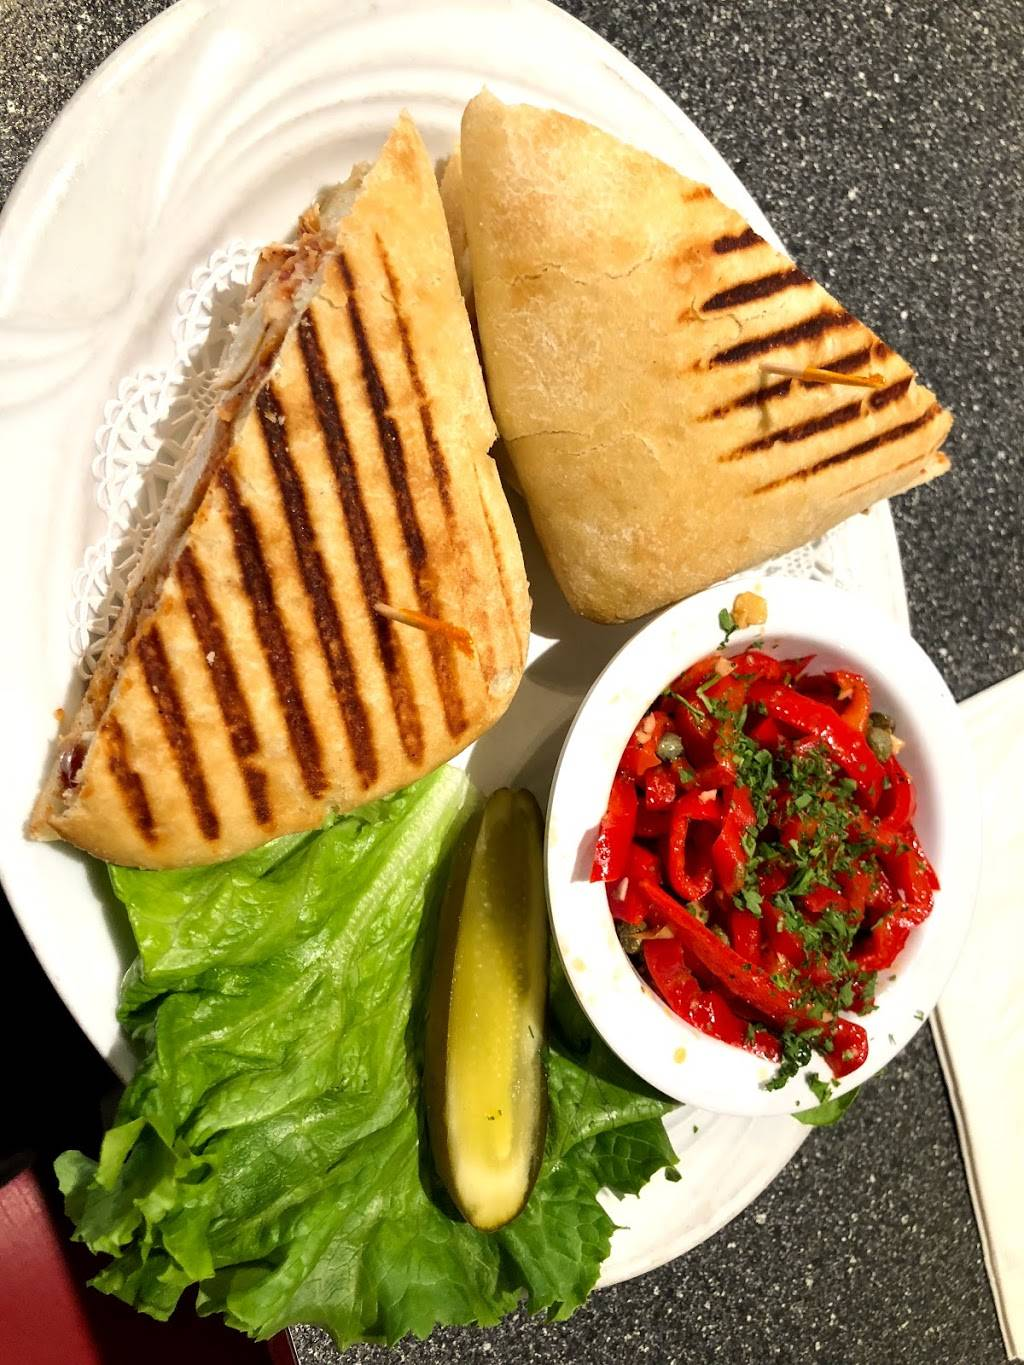 Picassos Cafe, Bakery & Catering Company | cafe | Suites A-D, 6070 Irwindale Ave, Irwindale, CA 91706, USA | 6269696100 OR +1 626-969-6100